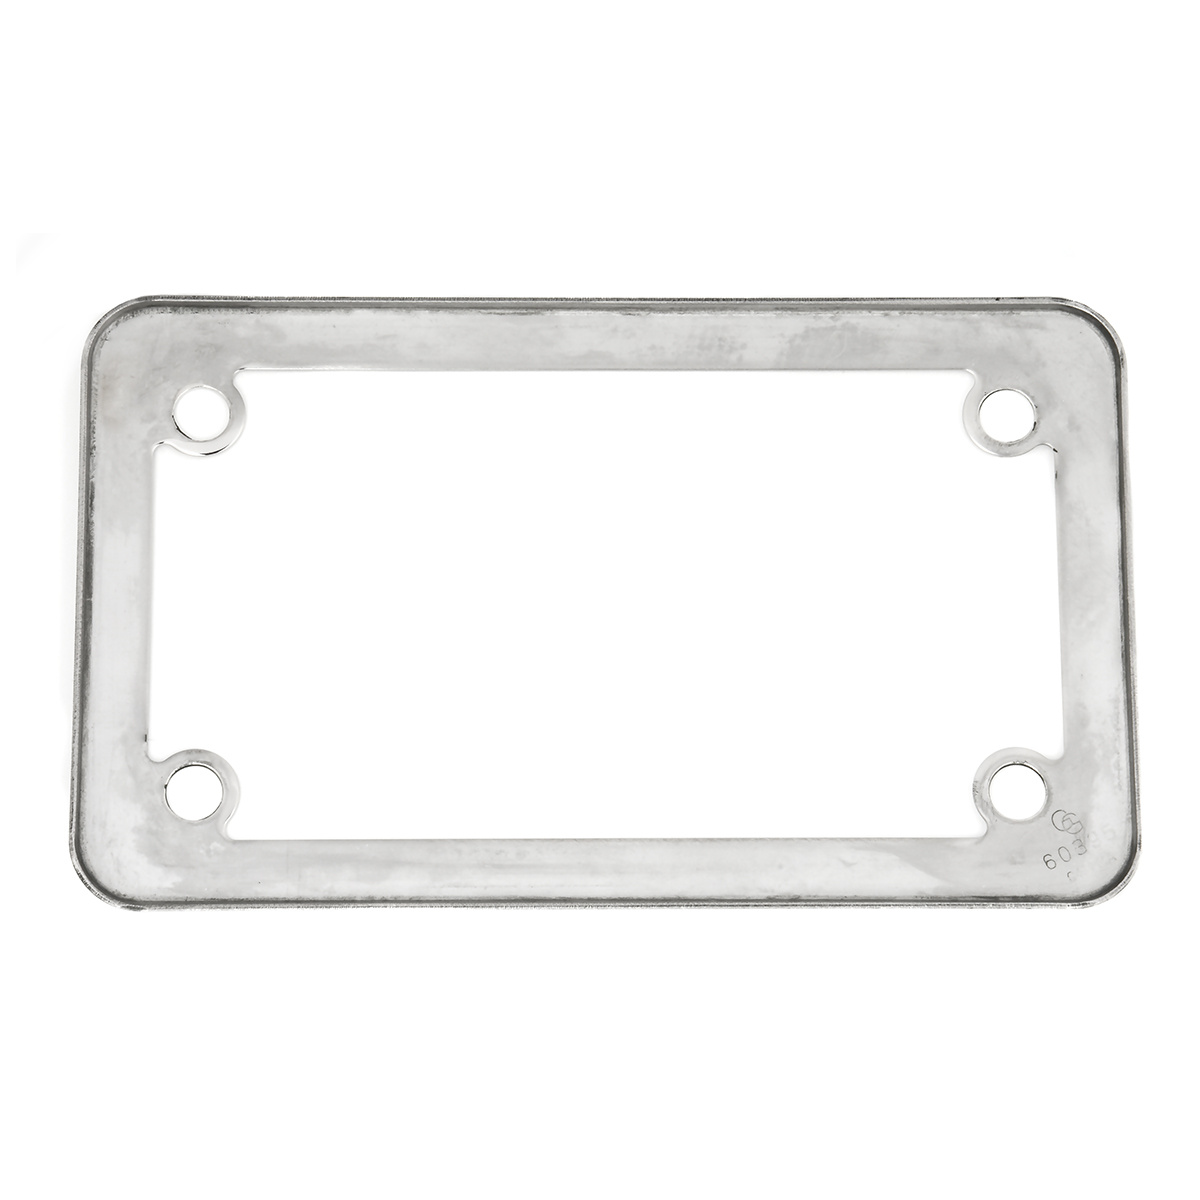 60395 Motorcycle License Plate Frames